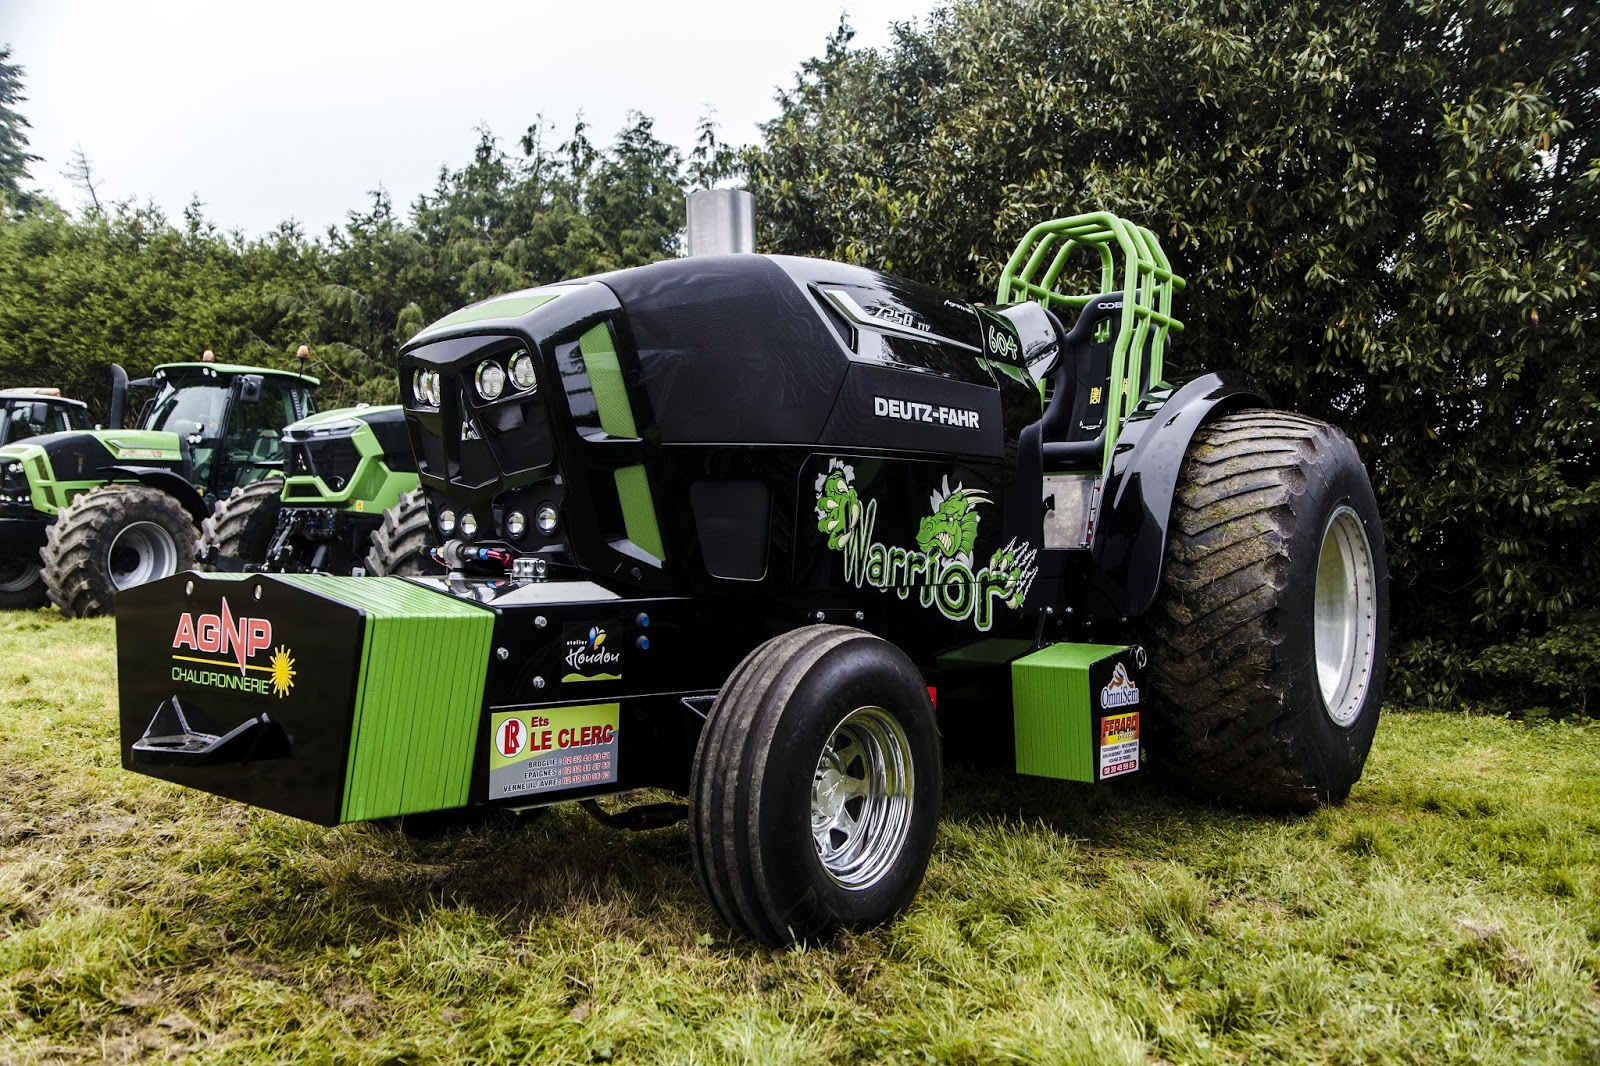 Super Pro Stock Pulling Tractor : Tractor pulling news pullingworld the new warrior